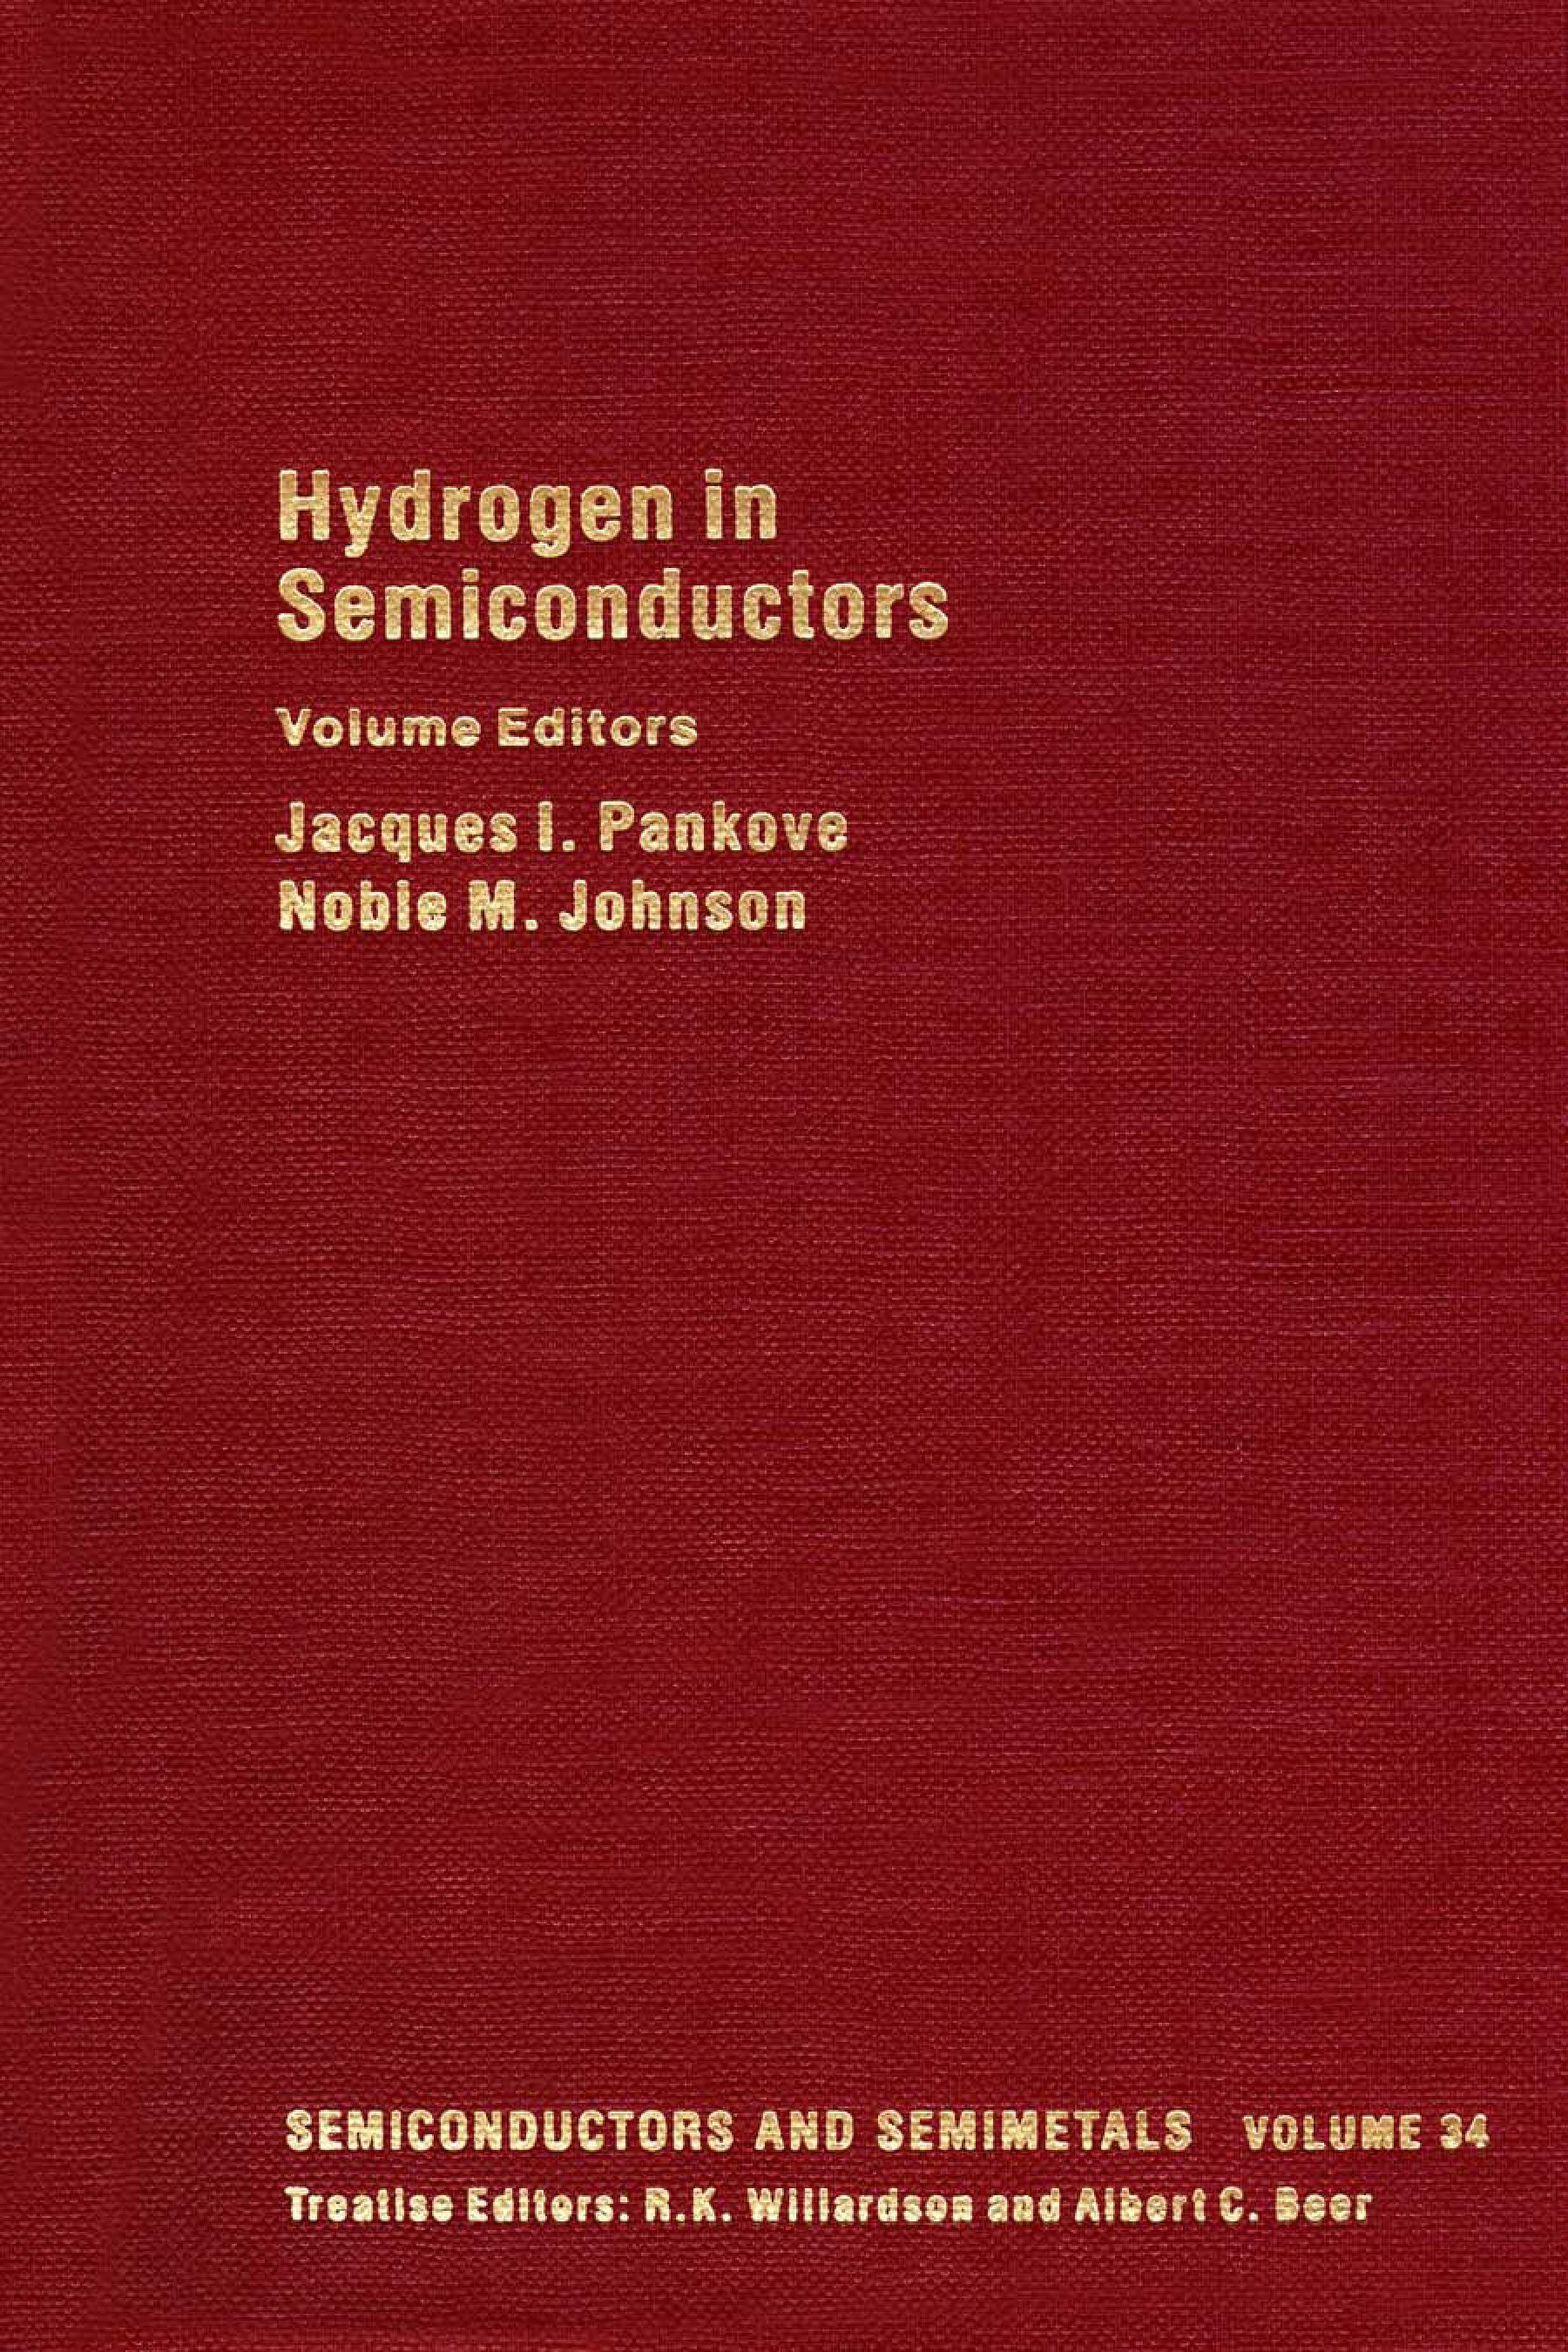 Hydrogen in Semiconductors: Hydrogen in SiliconVolume 34